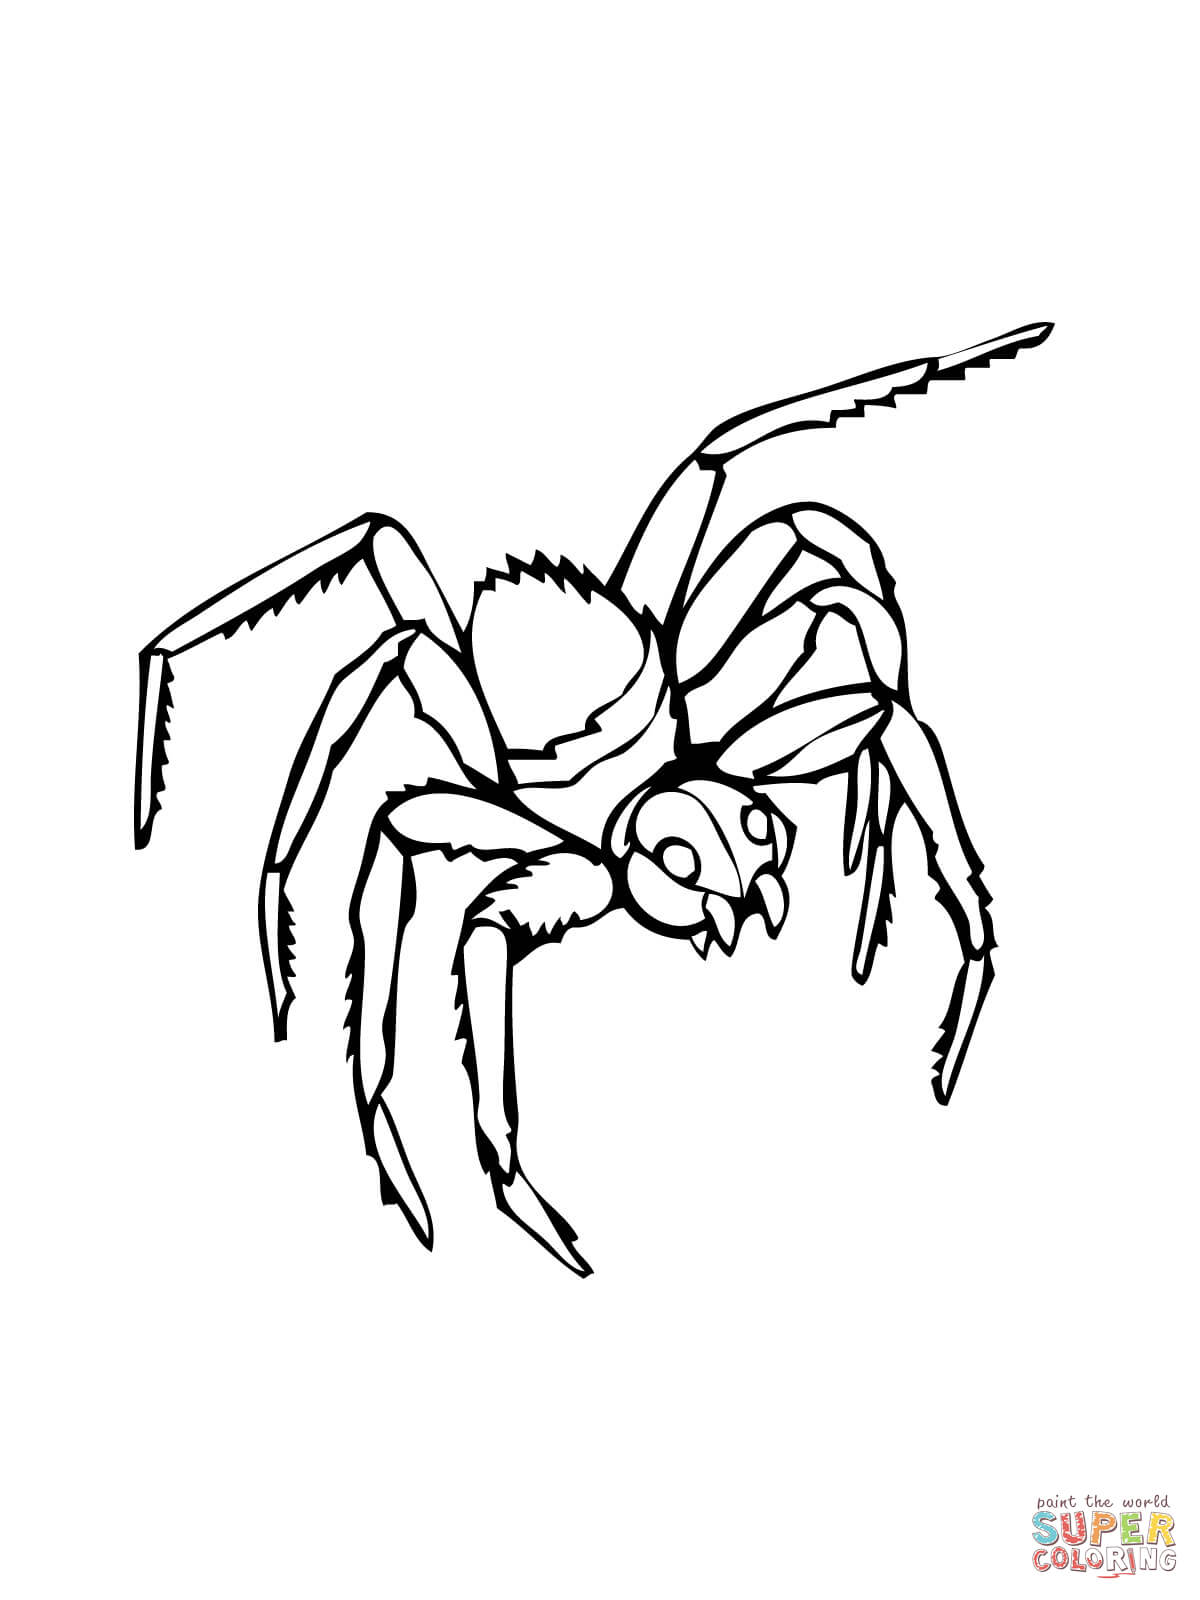 Black Widow Spider Drawing at GetDrawings.com   Free for personal ...